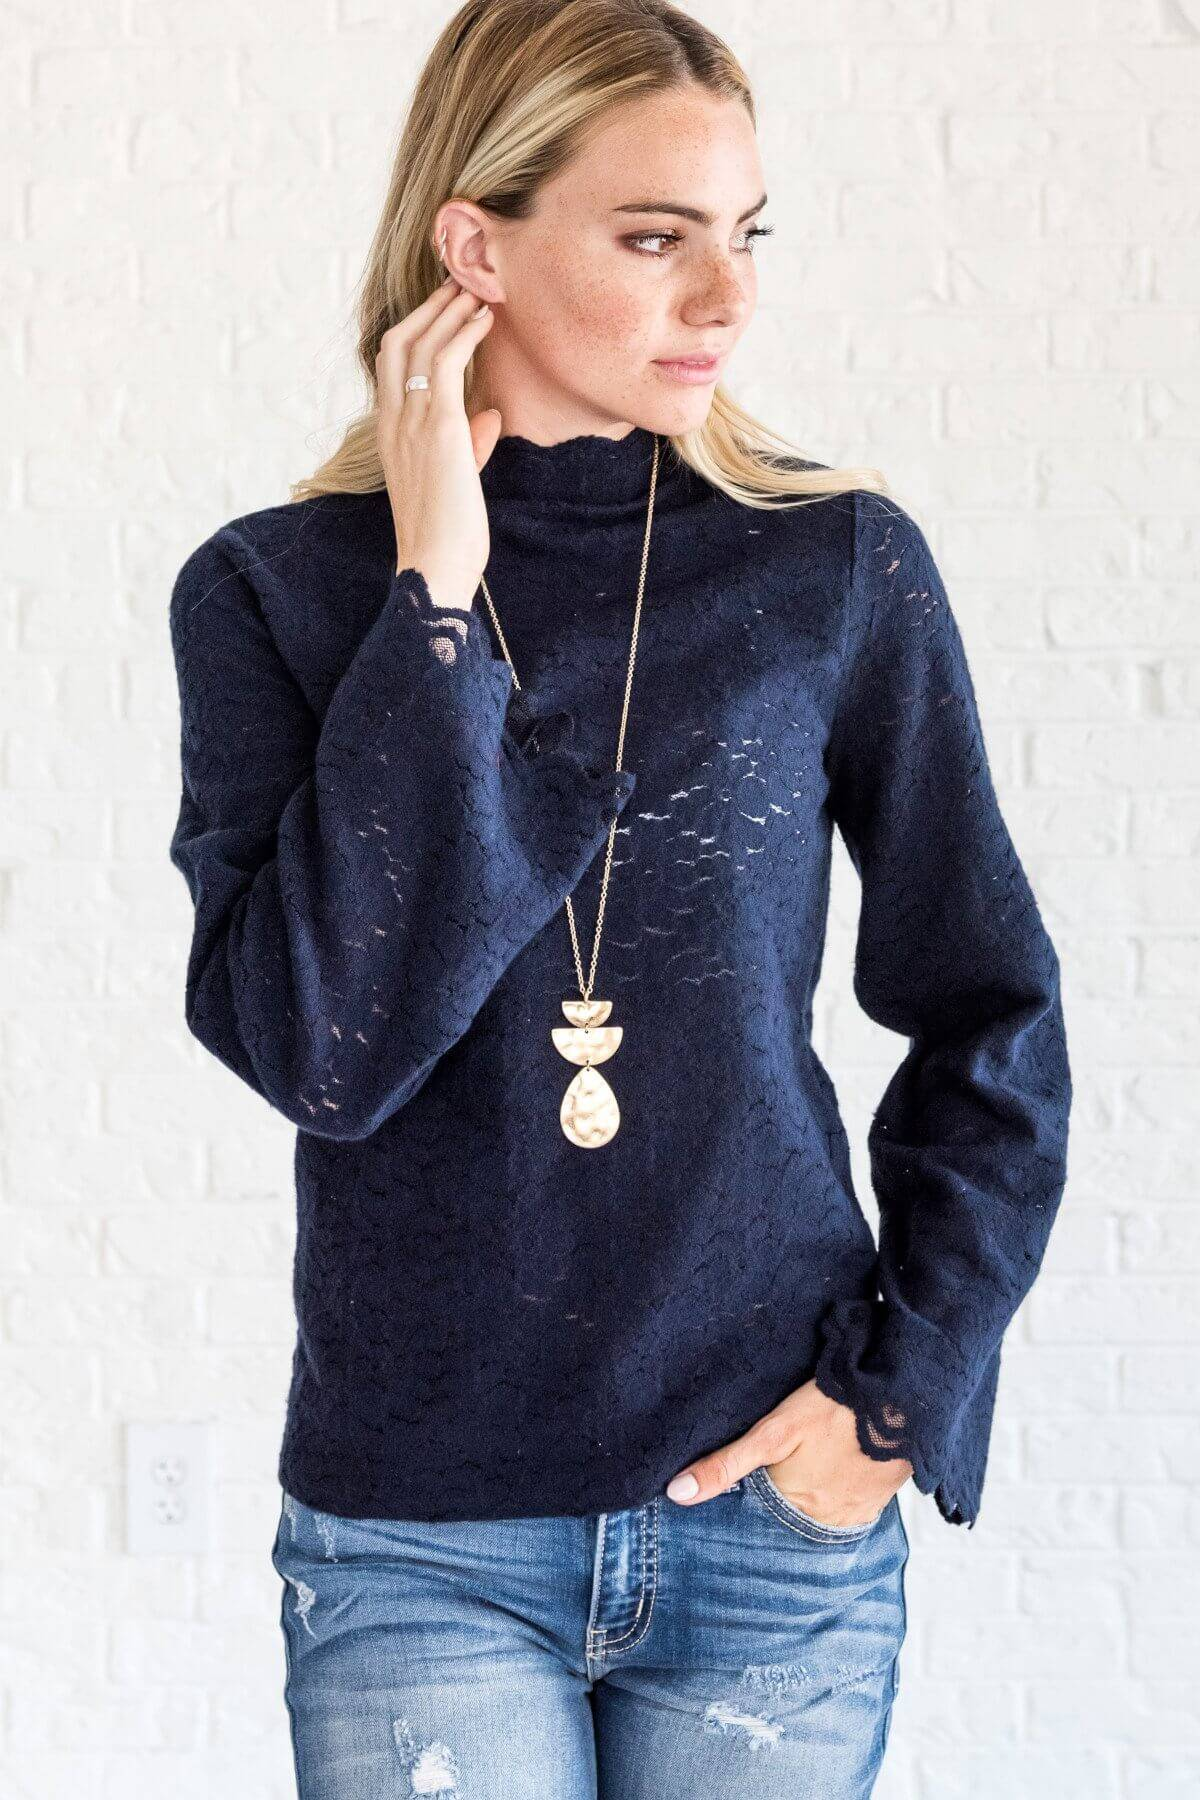 Navy Blue Lace High Neck Bell Sleeve Boho Tops for Women